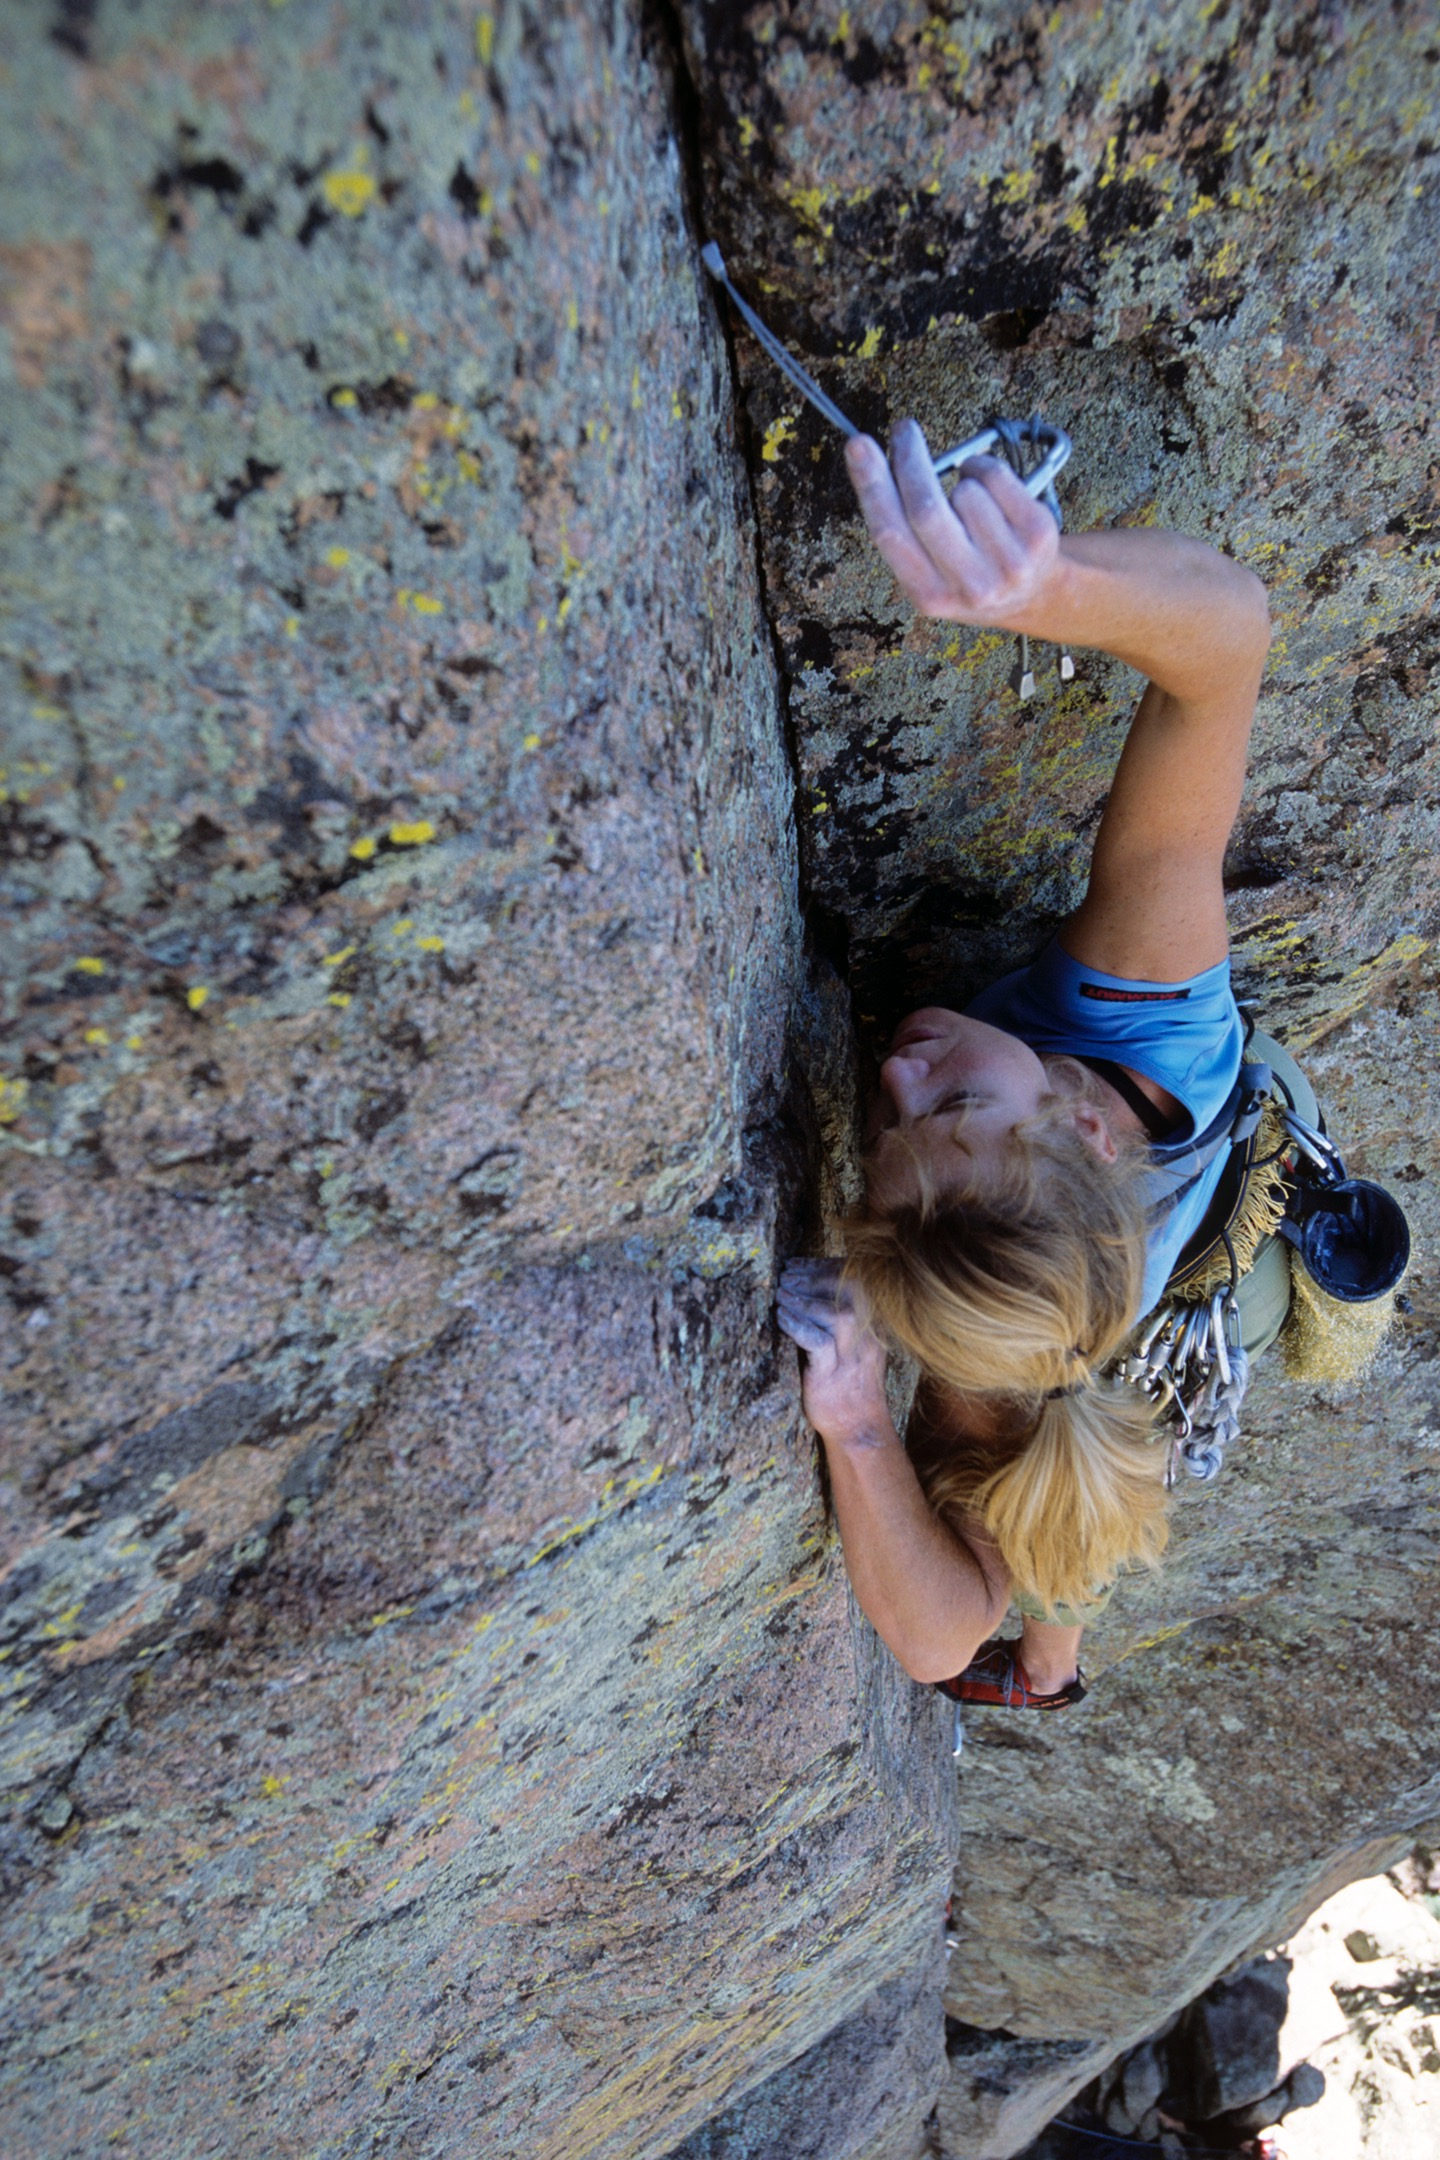 Cranking hard and feeling good! Carolyn Parker sewing up Rawhide (5.10+), Sandia Mountain Wilderness, NM. ©Kennan Harvey